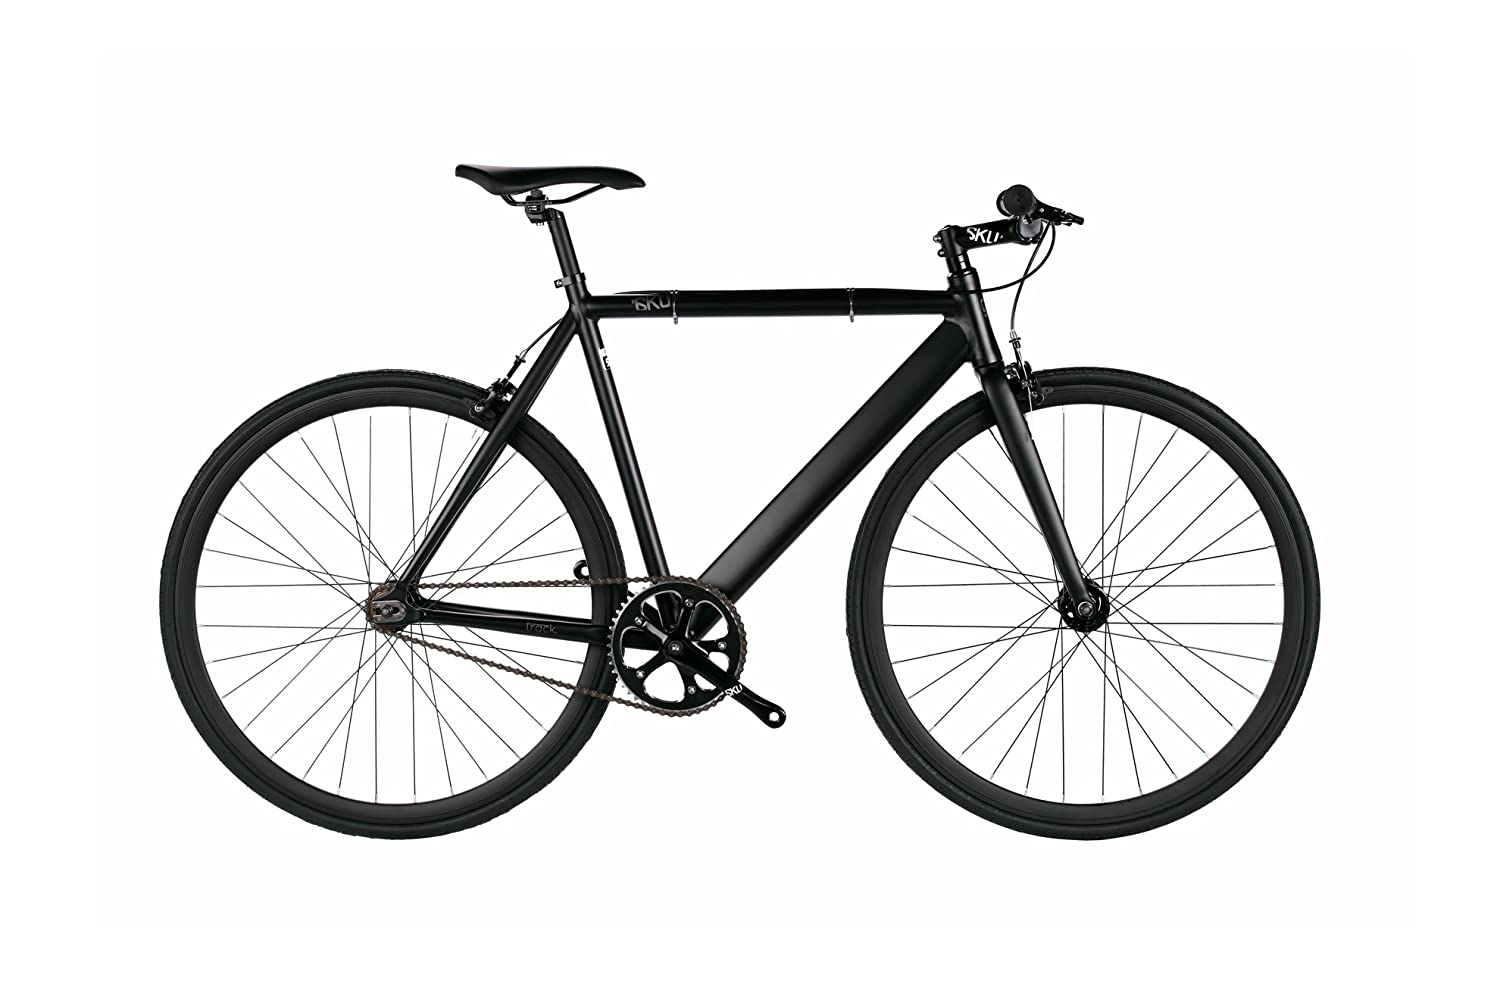 6KU Track Fixed Gear Bicycle